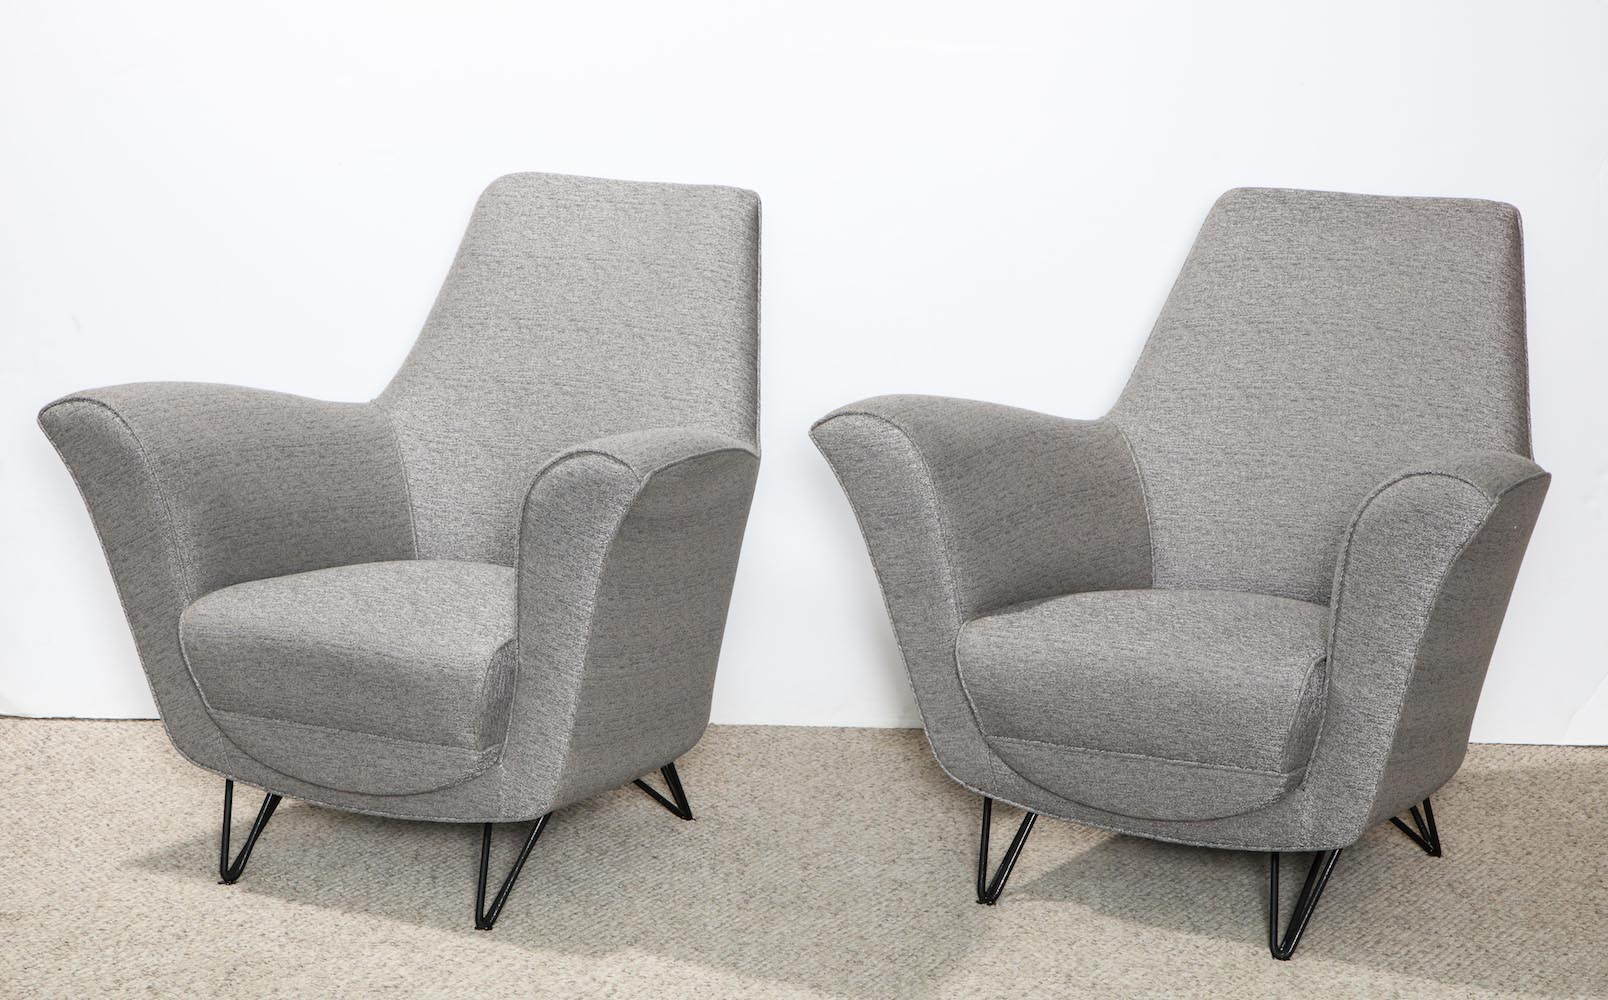 Parisi ISA Chairs 3.jpg